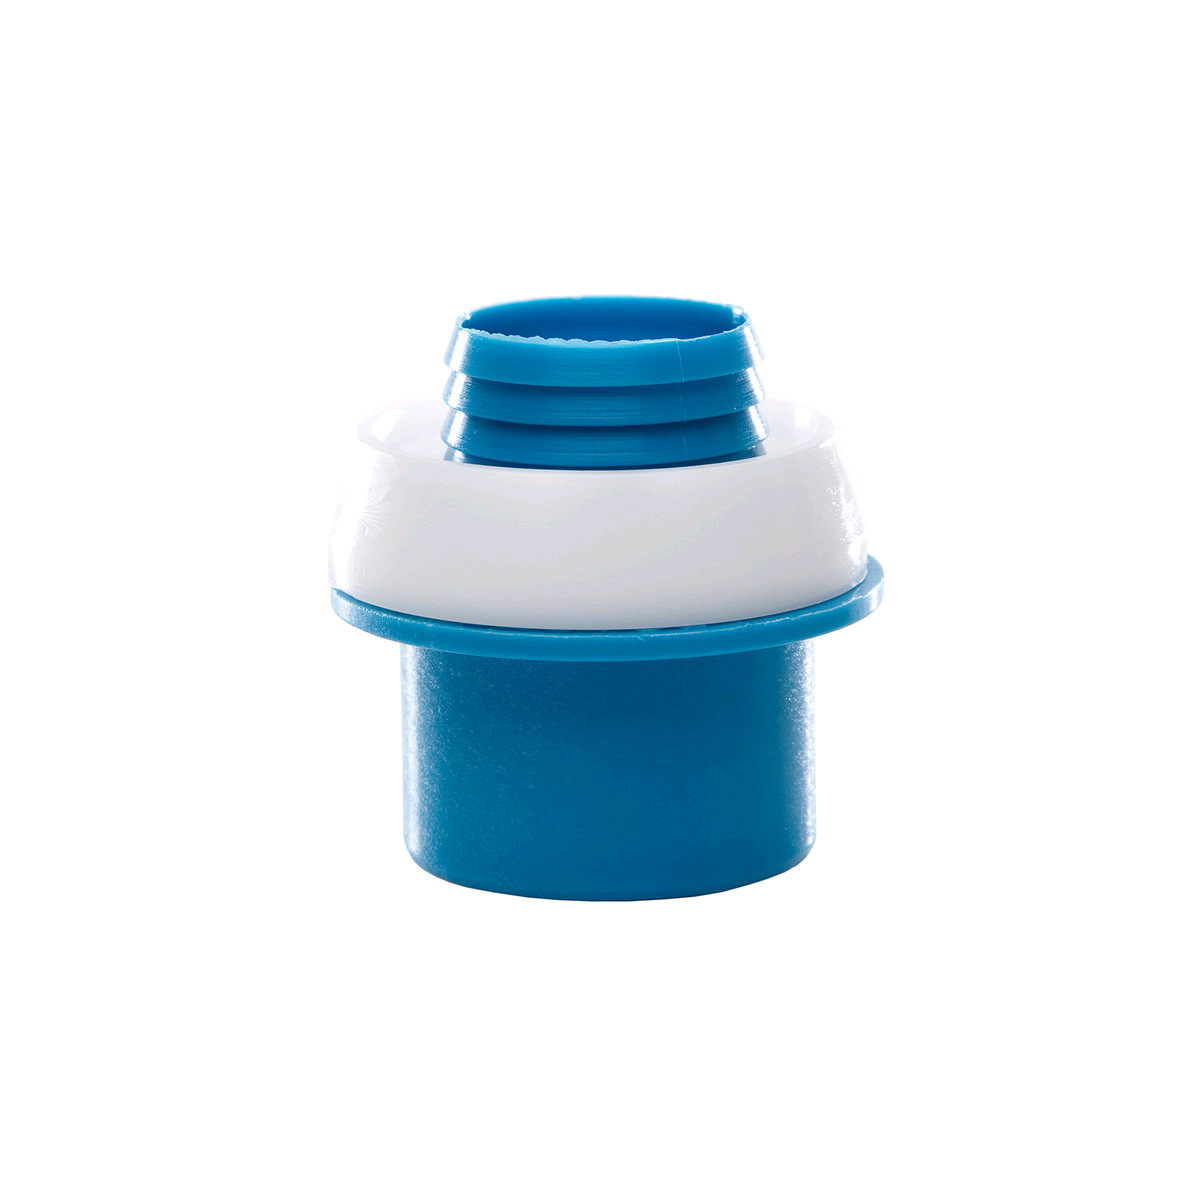 Polypipe Class C Adaptor Set Blue 20mm x 1/2""